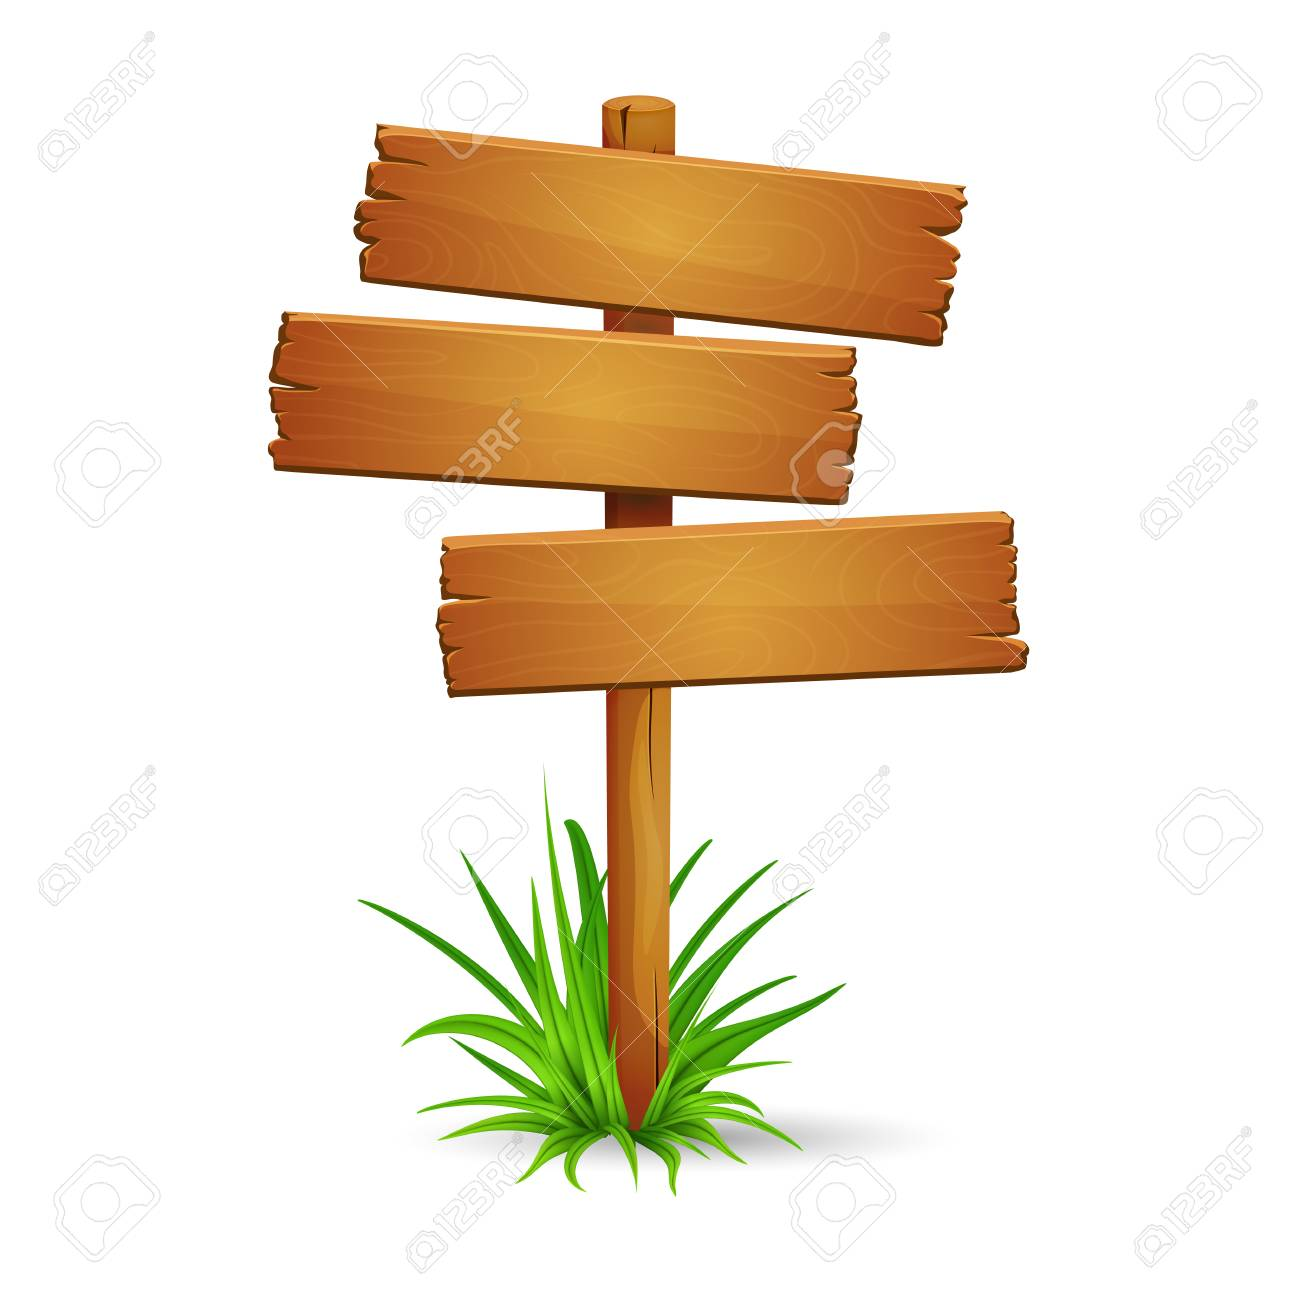 Illustration of old rickety signpost with bunch of green grass isolated on white background. Blank space for text. - 112002892